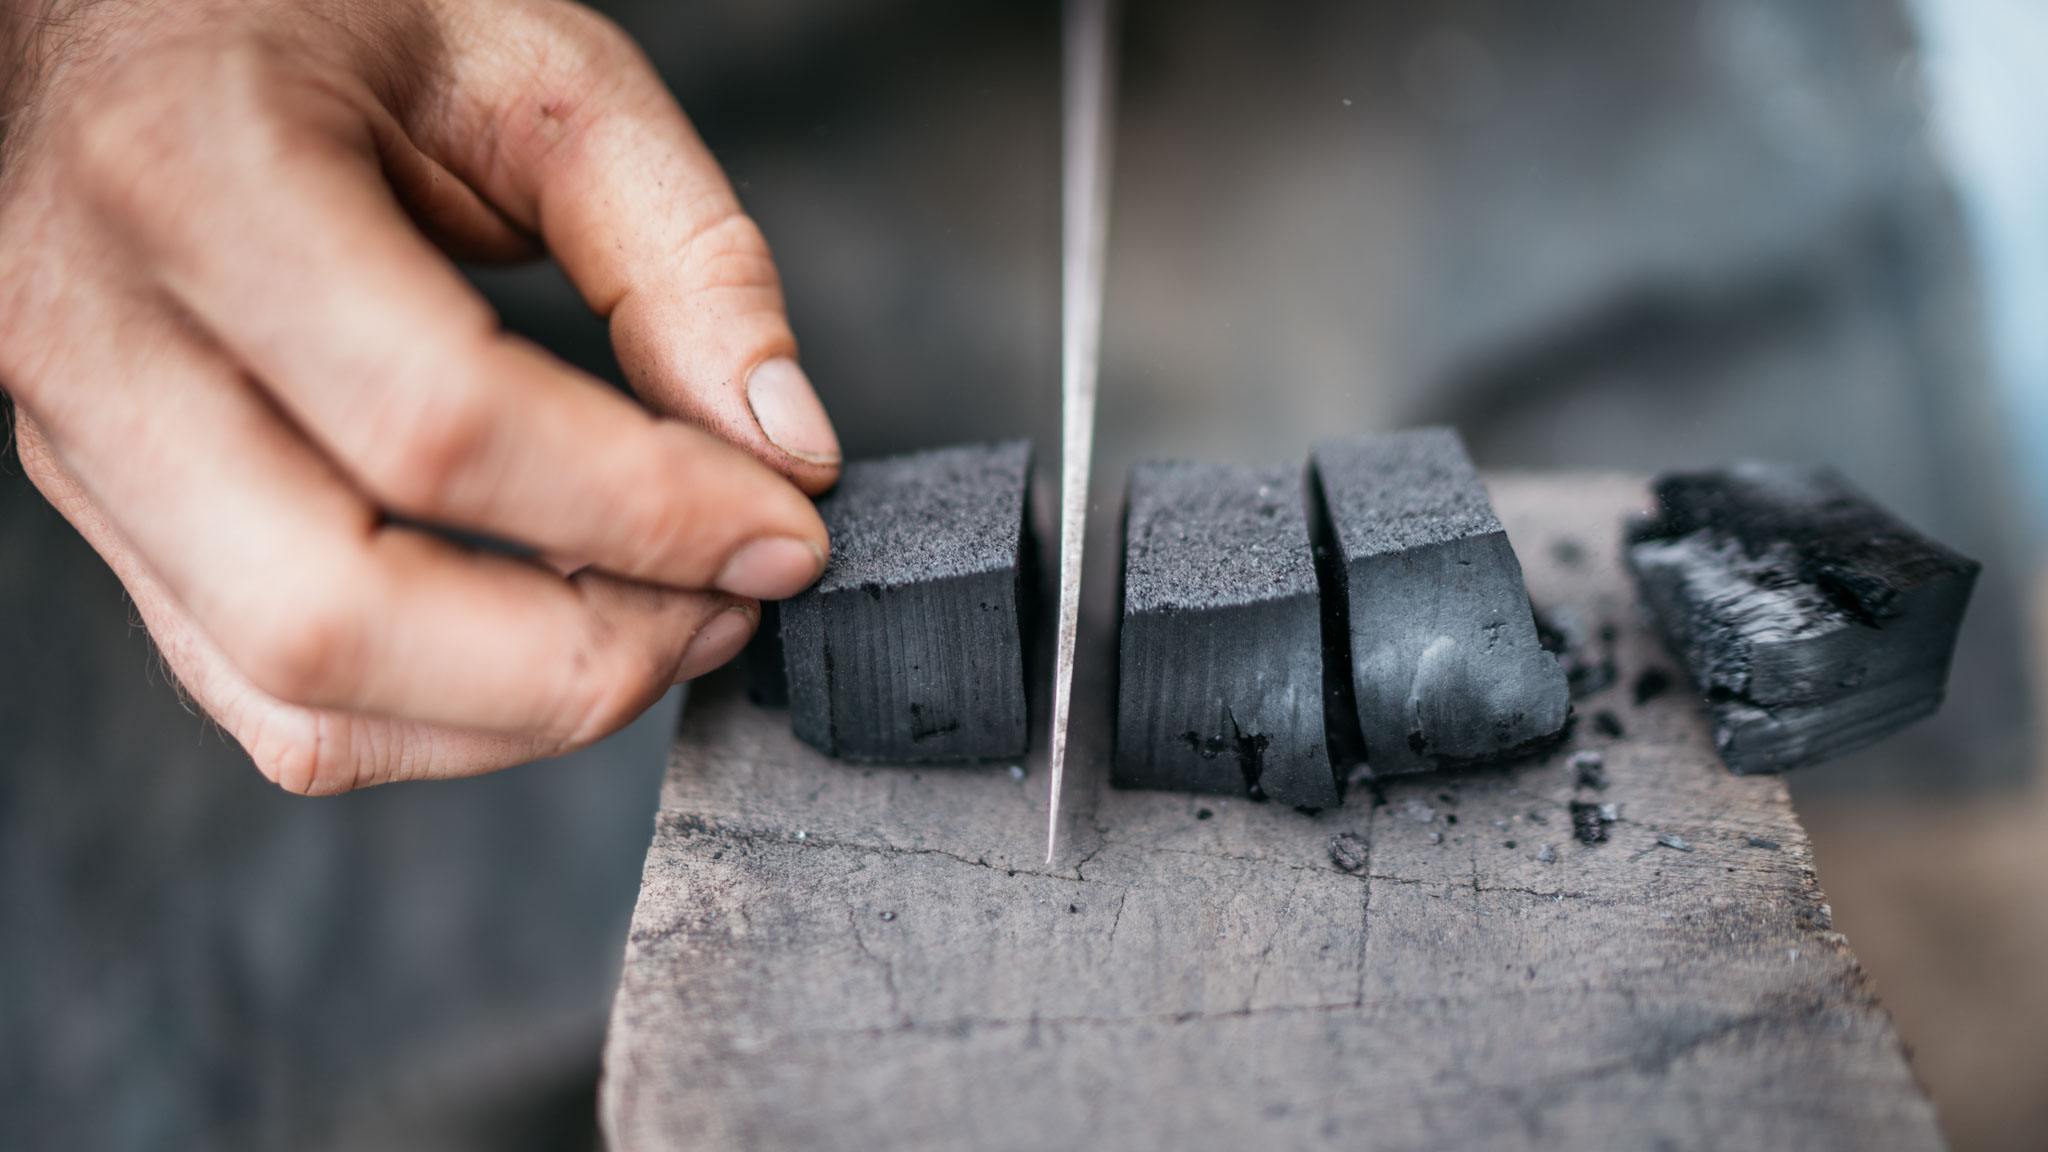 Pine charcoal is made and cut into pieces for use in the forge.